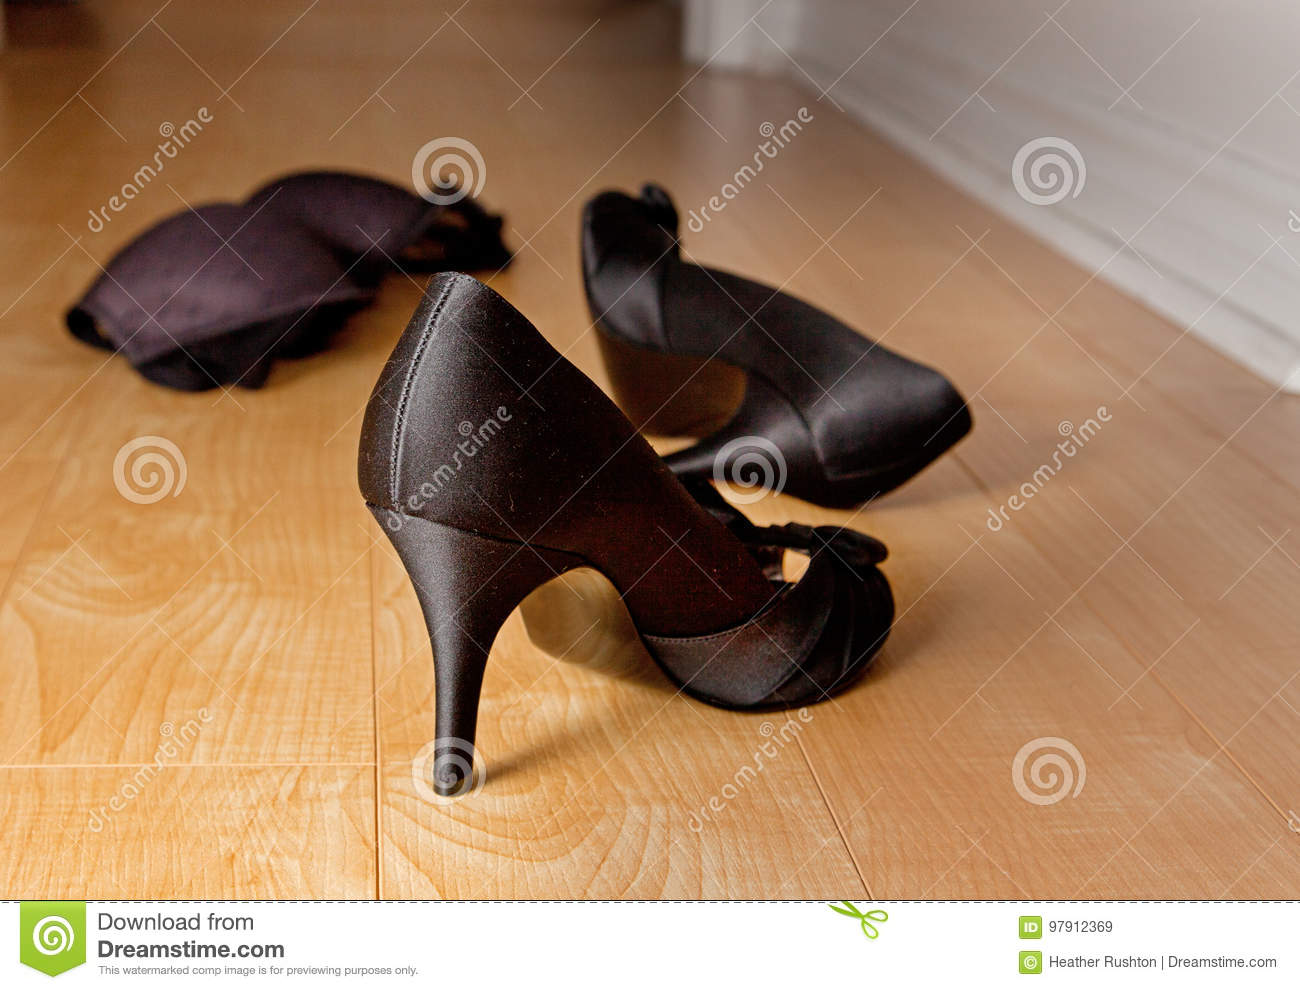 Lust Or Passion, With High Heeled Stilhetto Shoes And A Black Bra Thrown On  The Bedroom Floor